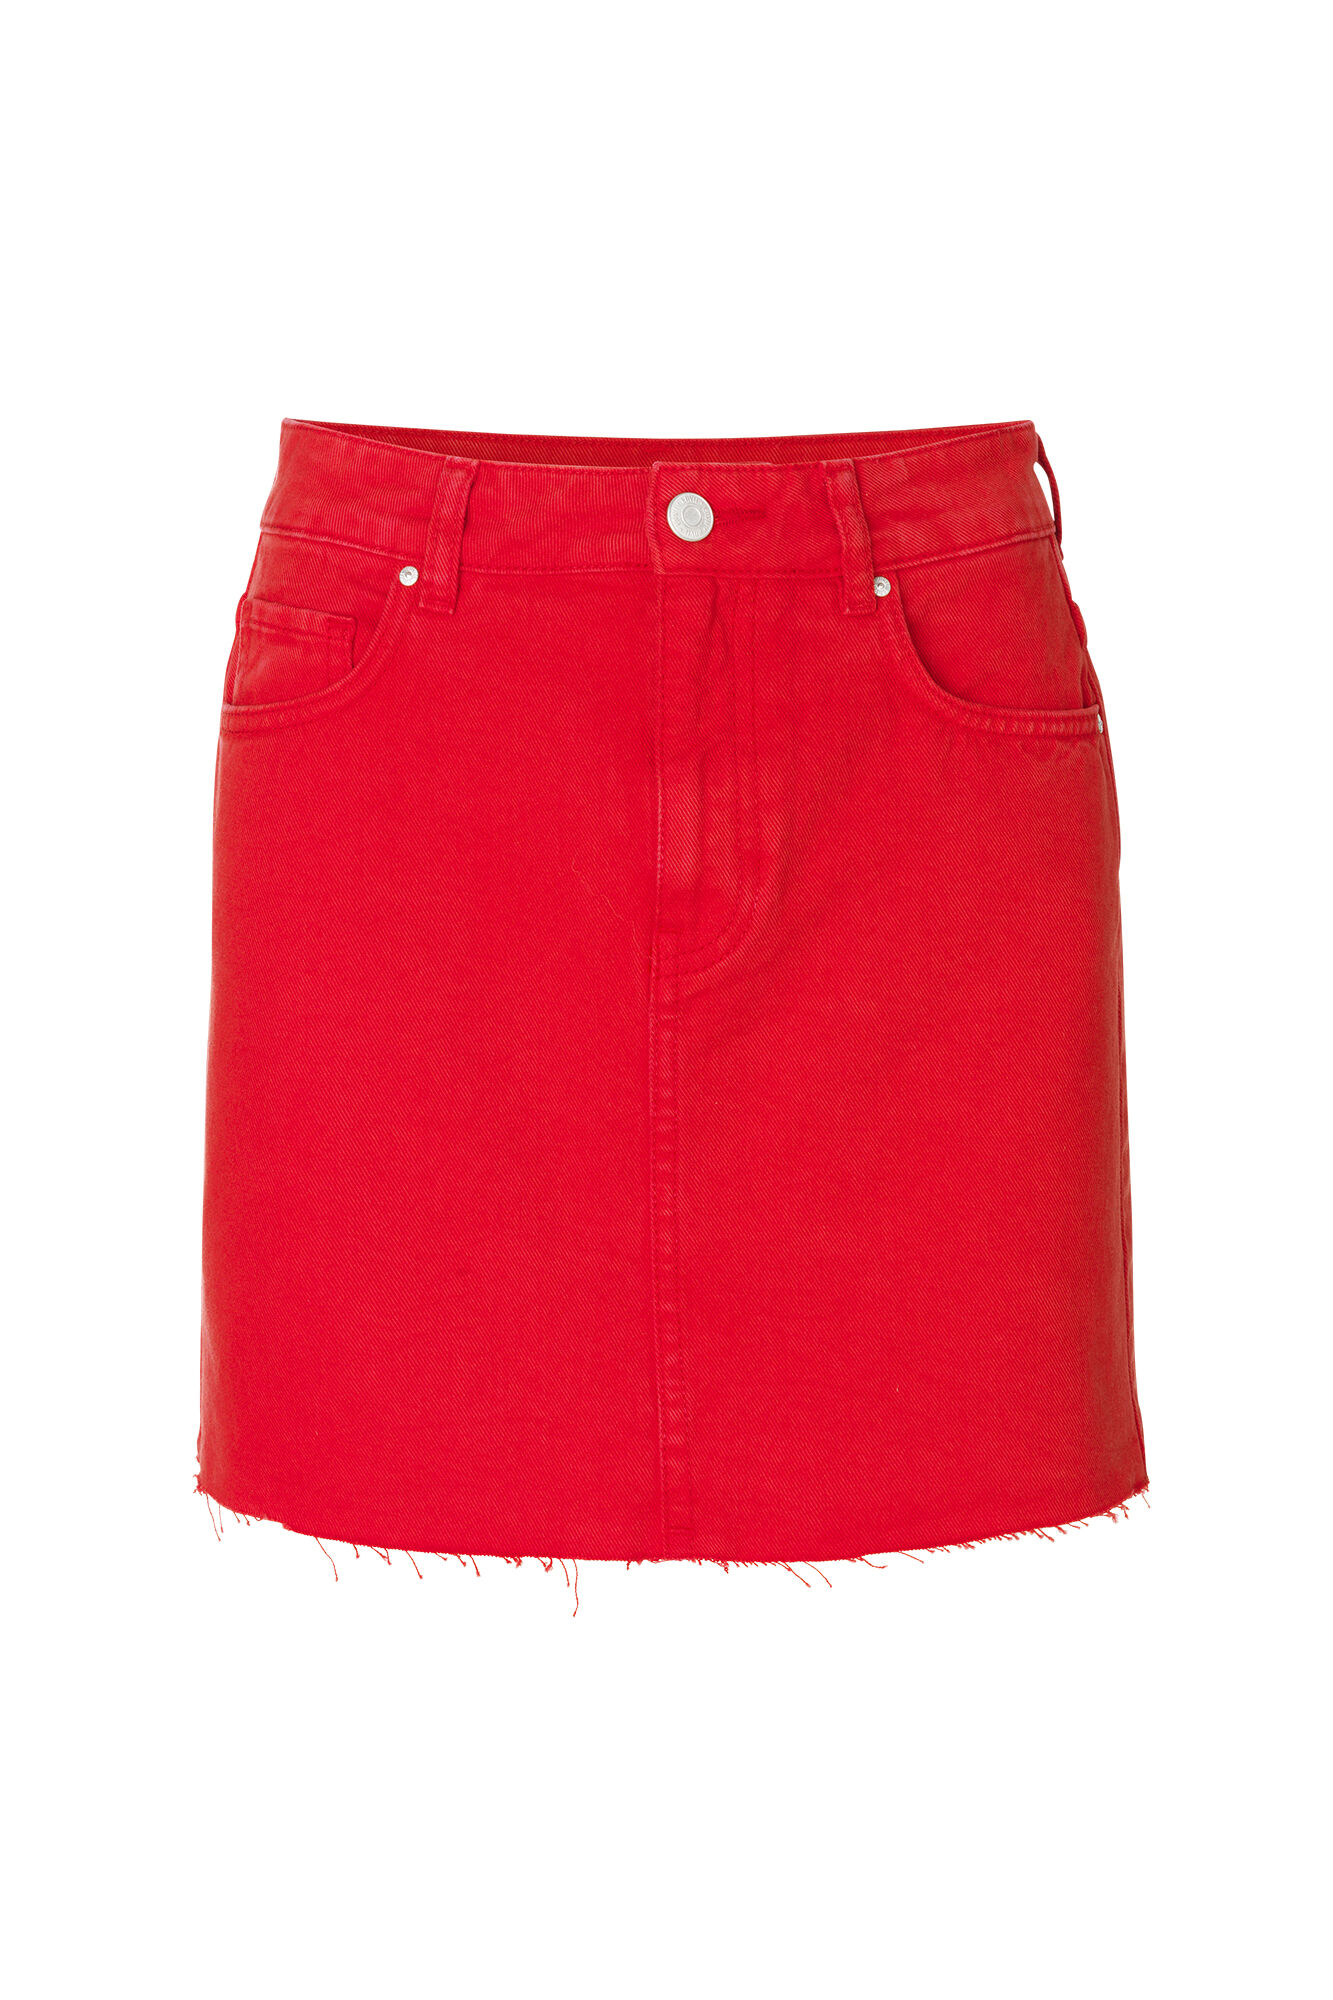 ENPINATA DENIM SKIRT 6522, CANDY RED